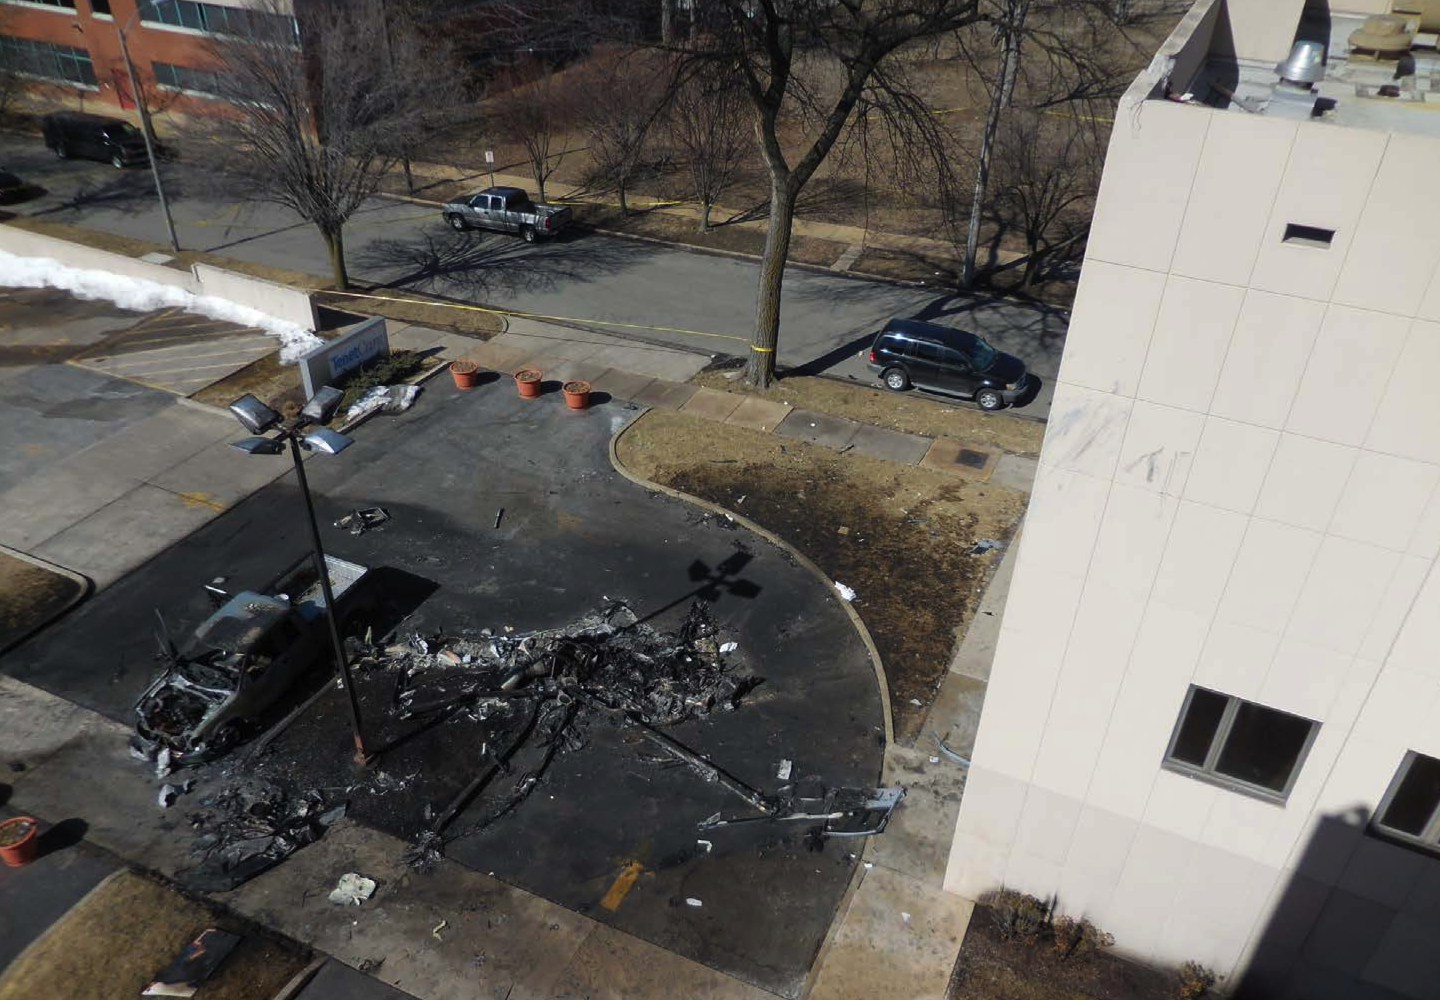 St Louis rooftop helipad crash